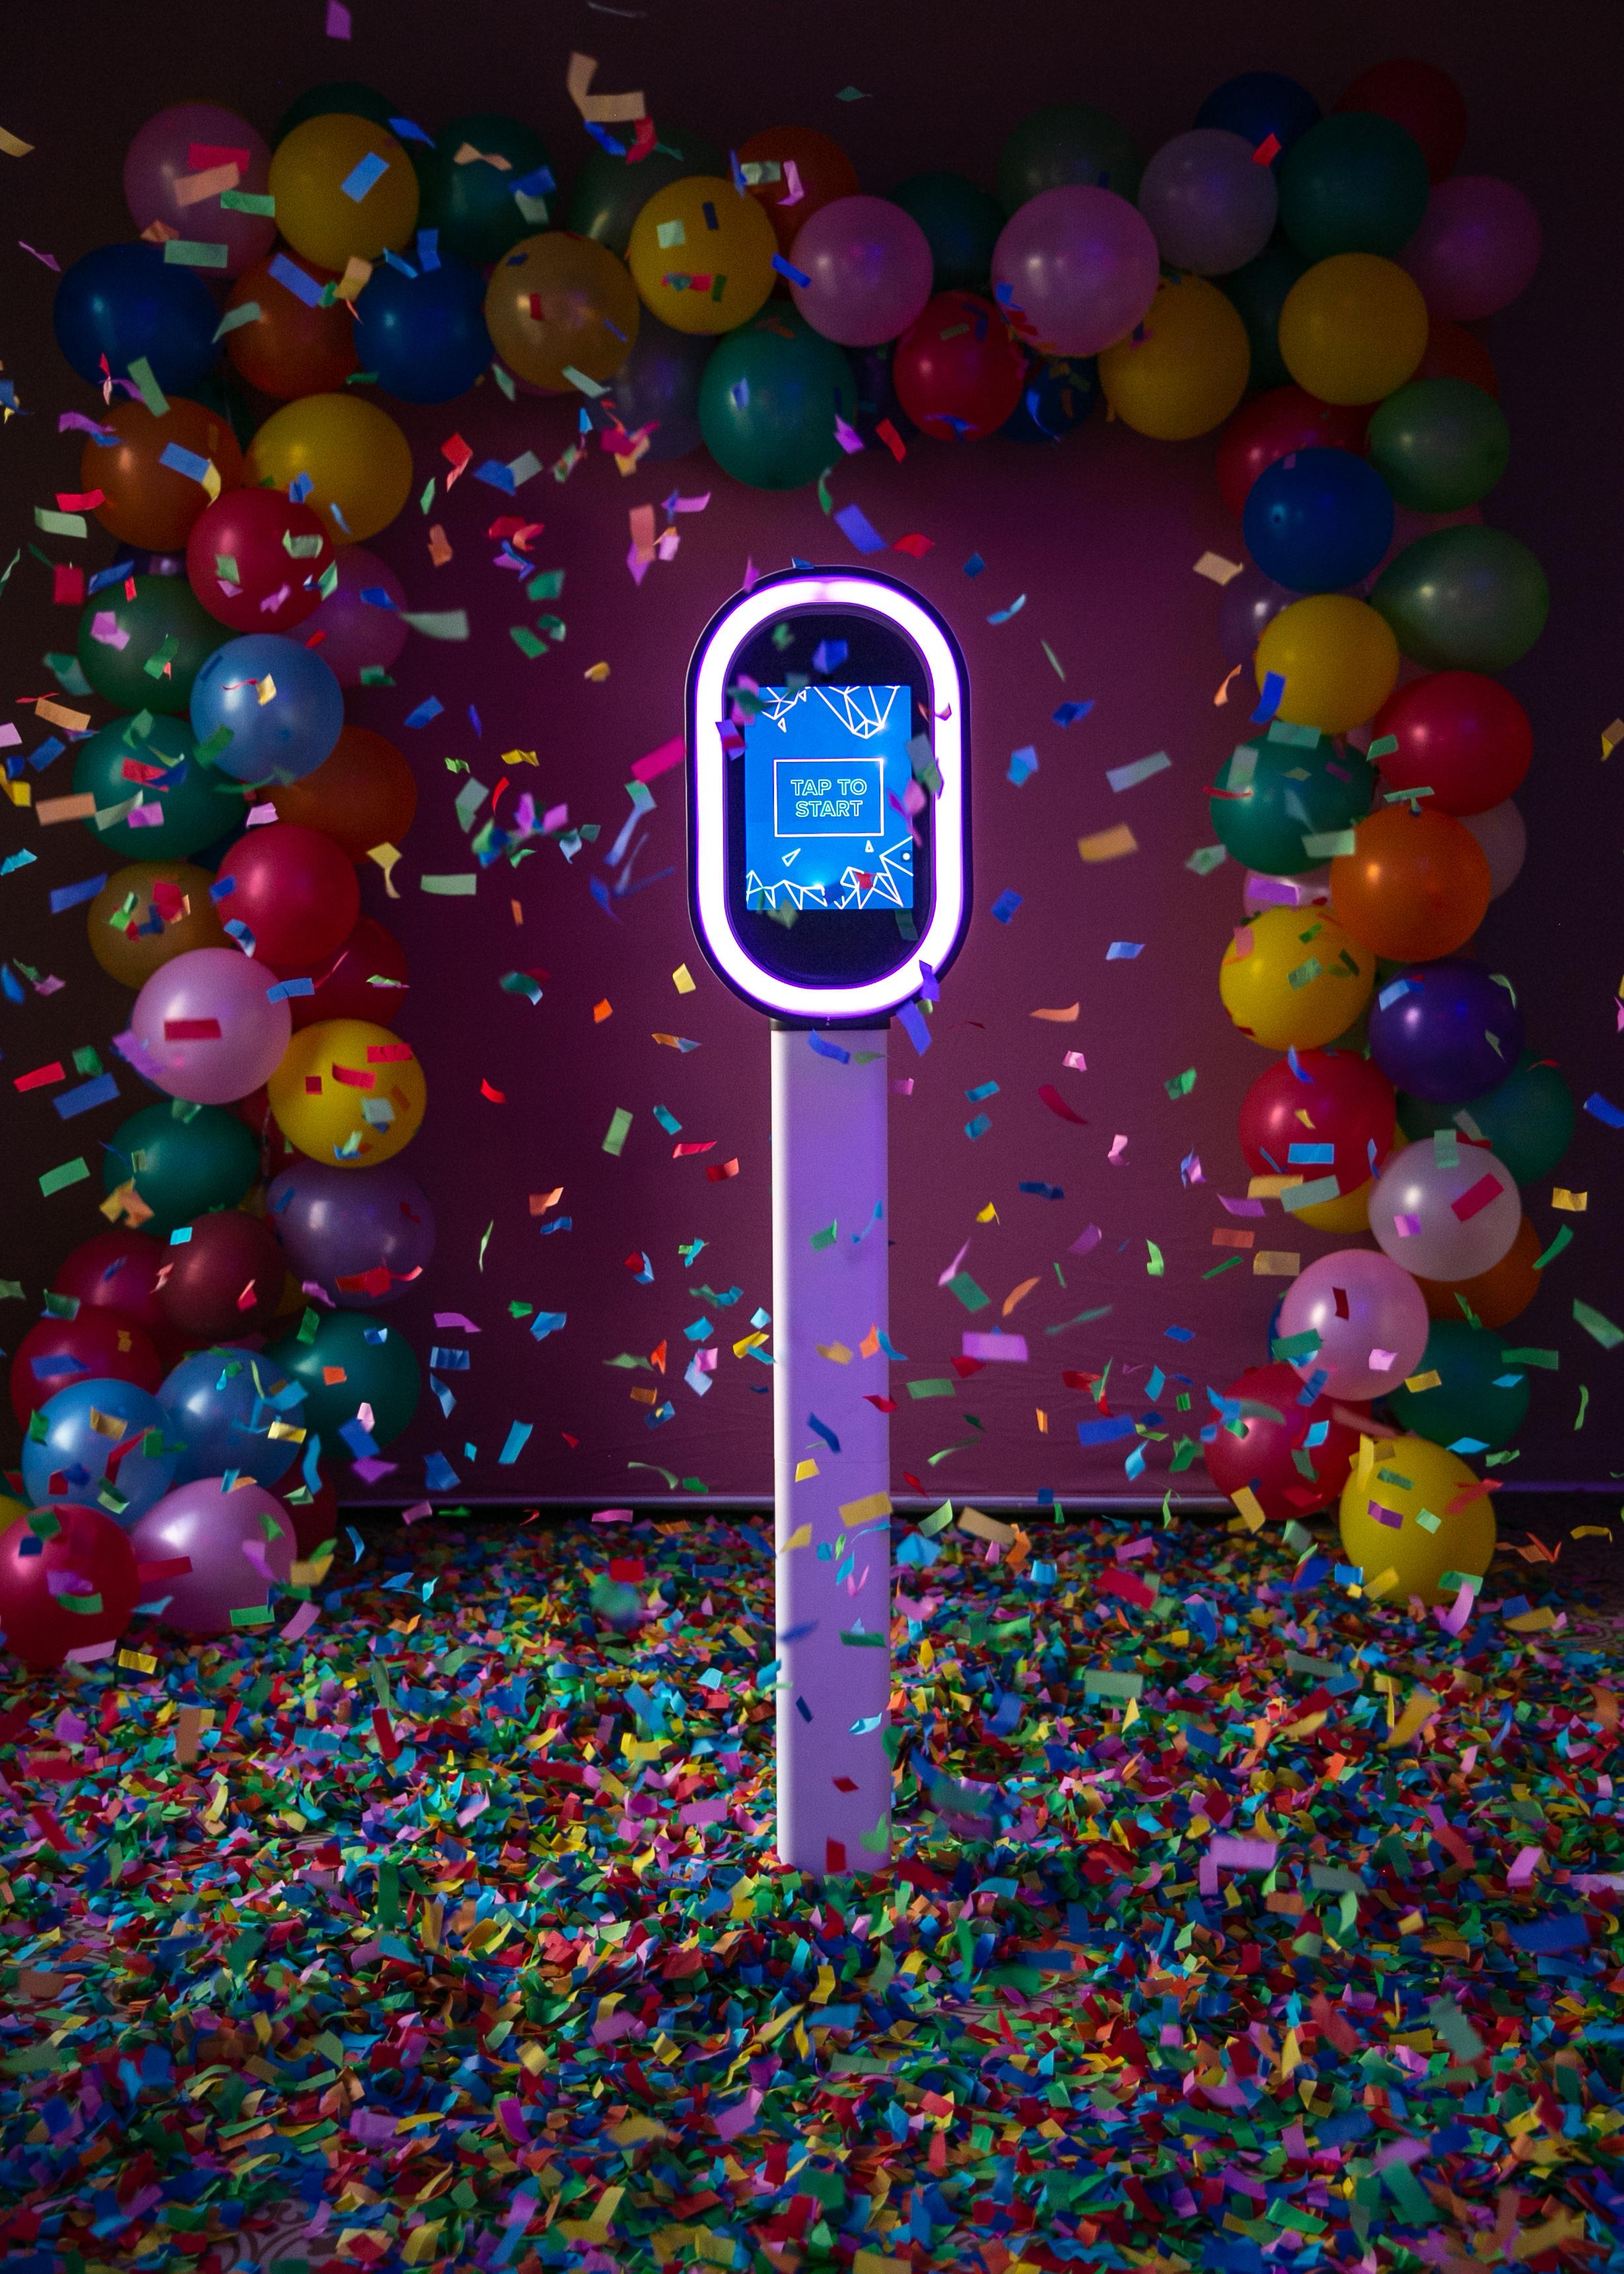 do it for the gram. - - Delivers Photos via Text, Email, or AirDrop- Customizable LED lighting to match any event- 36lbs making it easy to move- 2 Minute Assembly- No awkward attendant watching all your guests take their photos- Offers Boomerang, Photos, and Videos- Easy to use Filters- Non-exclusive, meaning, anyone can rent! Not just McKenzie Bigliazzi Clients!Check Availability Here